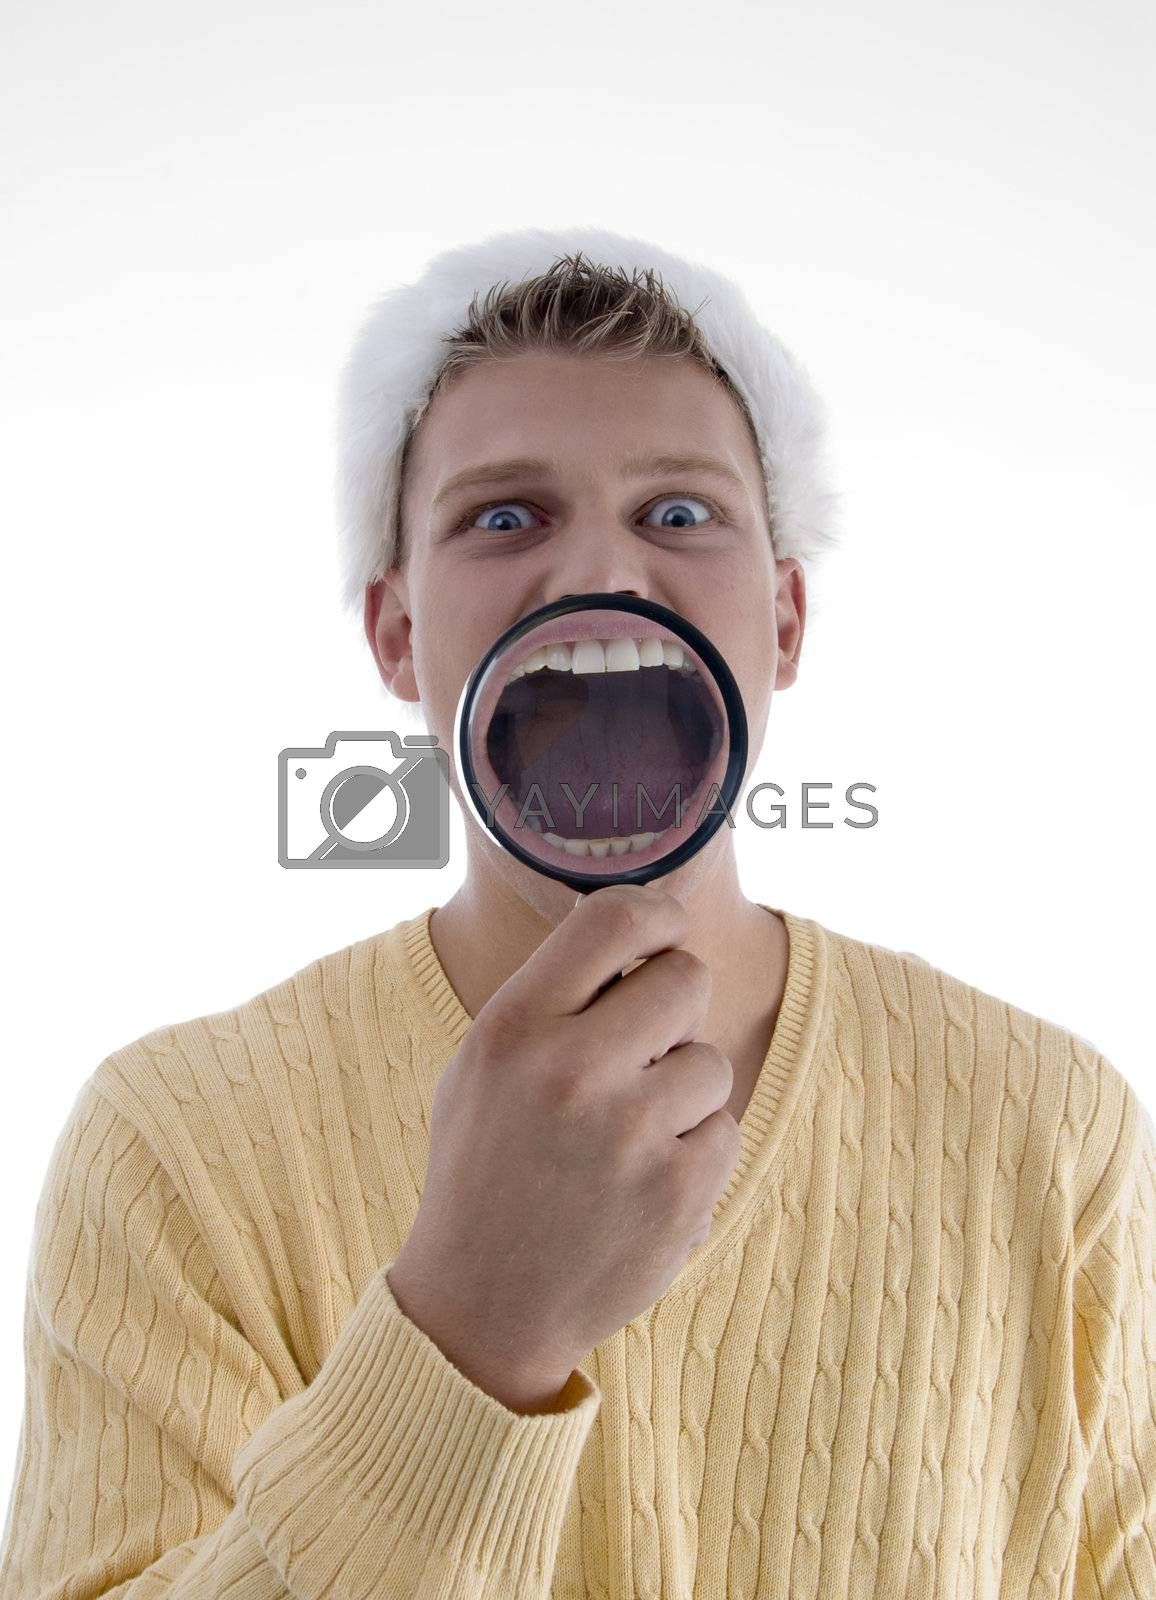 man weaing santa hat and showing teeth through lens on an isolated background